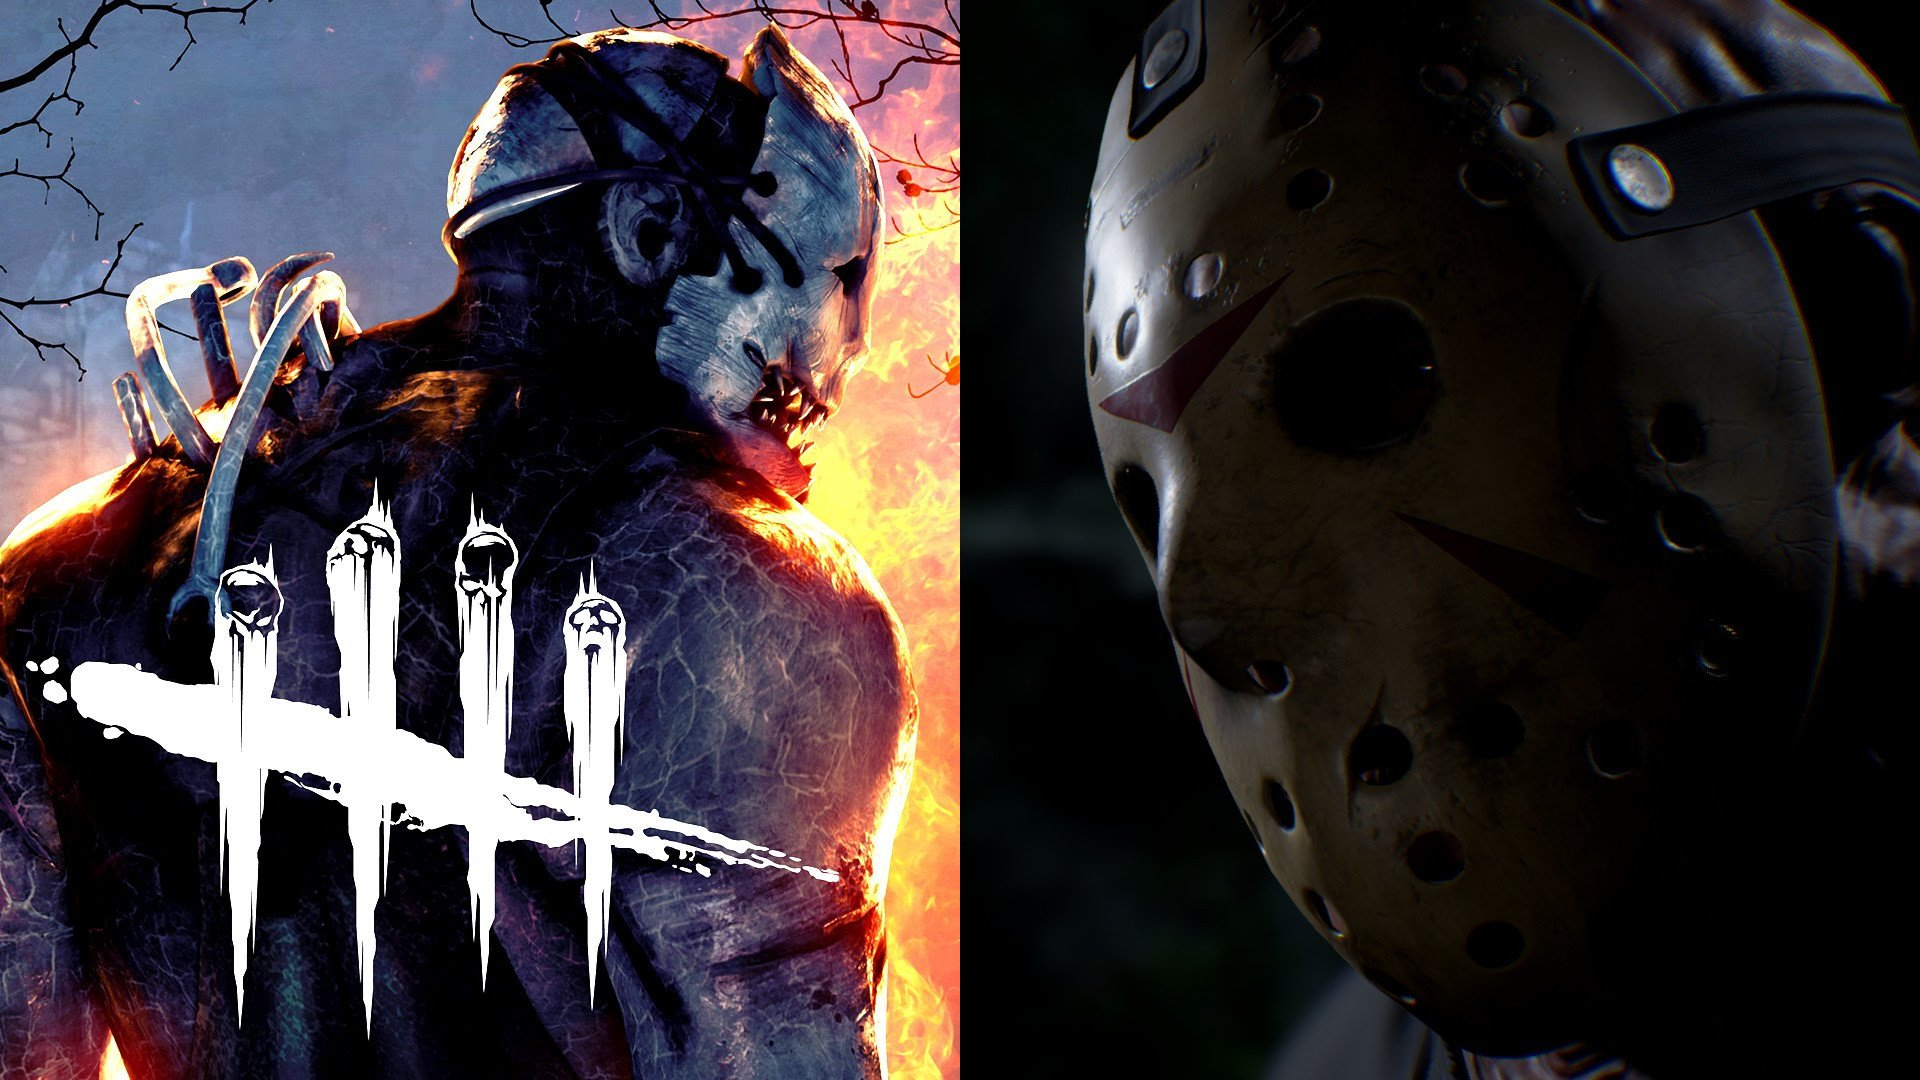 Friday The 13th The Game Wallpaper: Friday The 13th The Game Wallpapers (42 Wallpapers